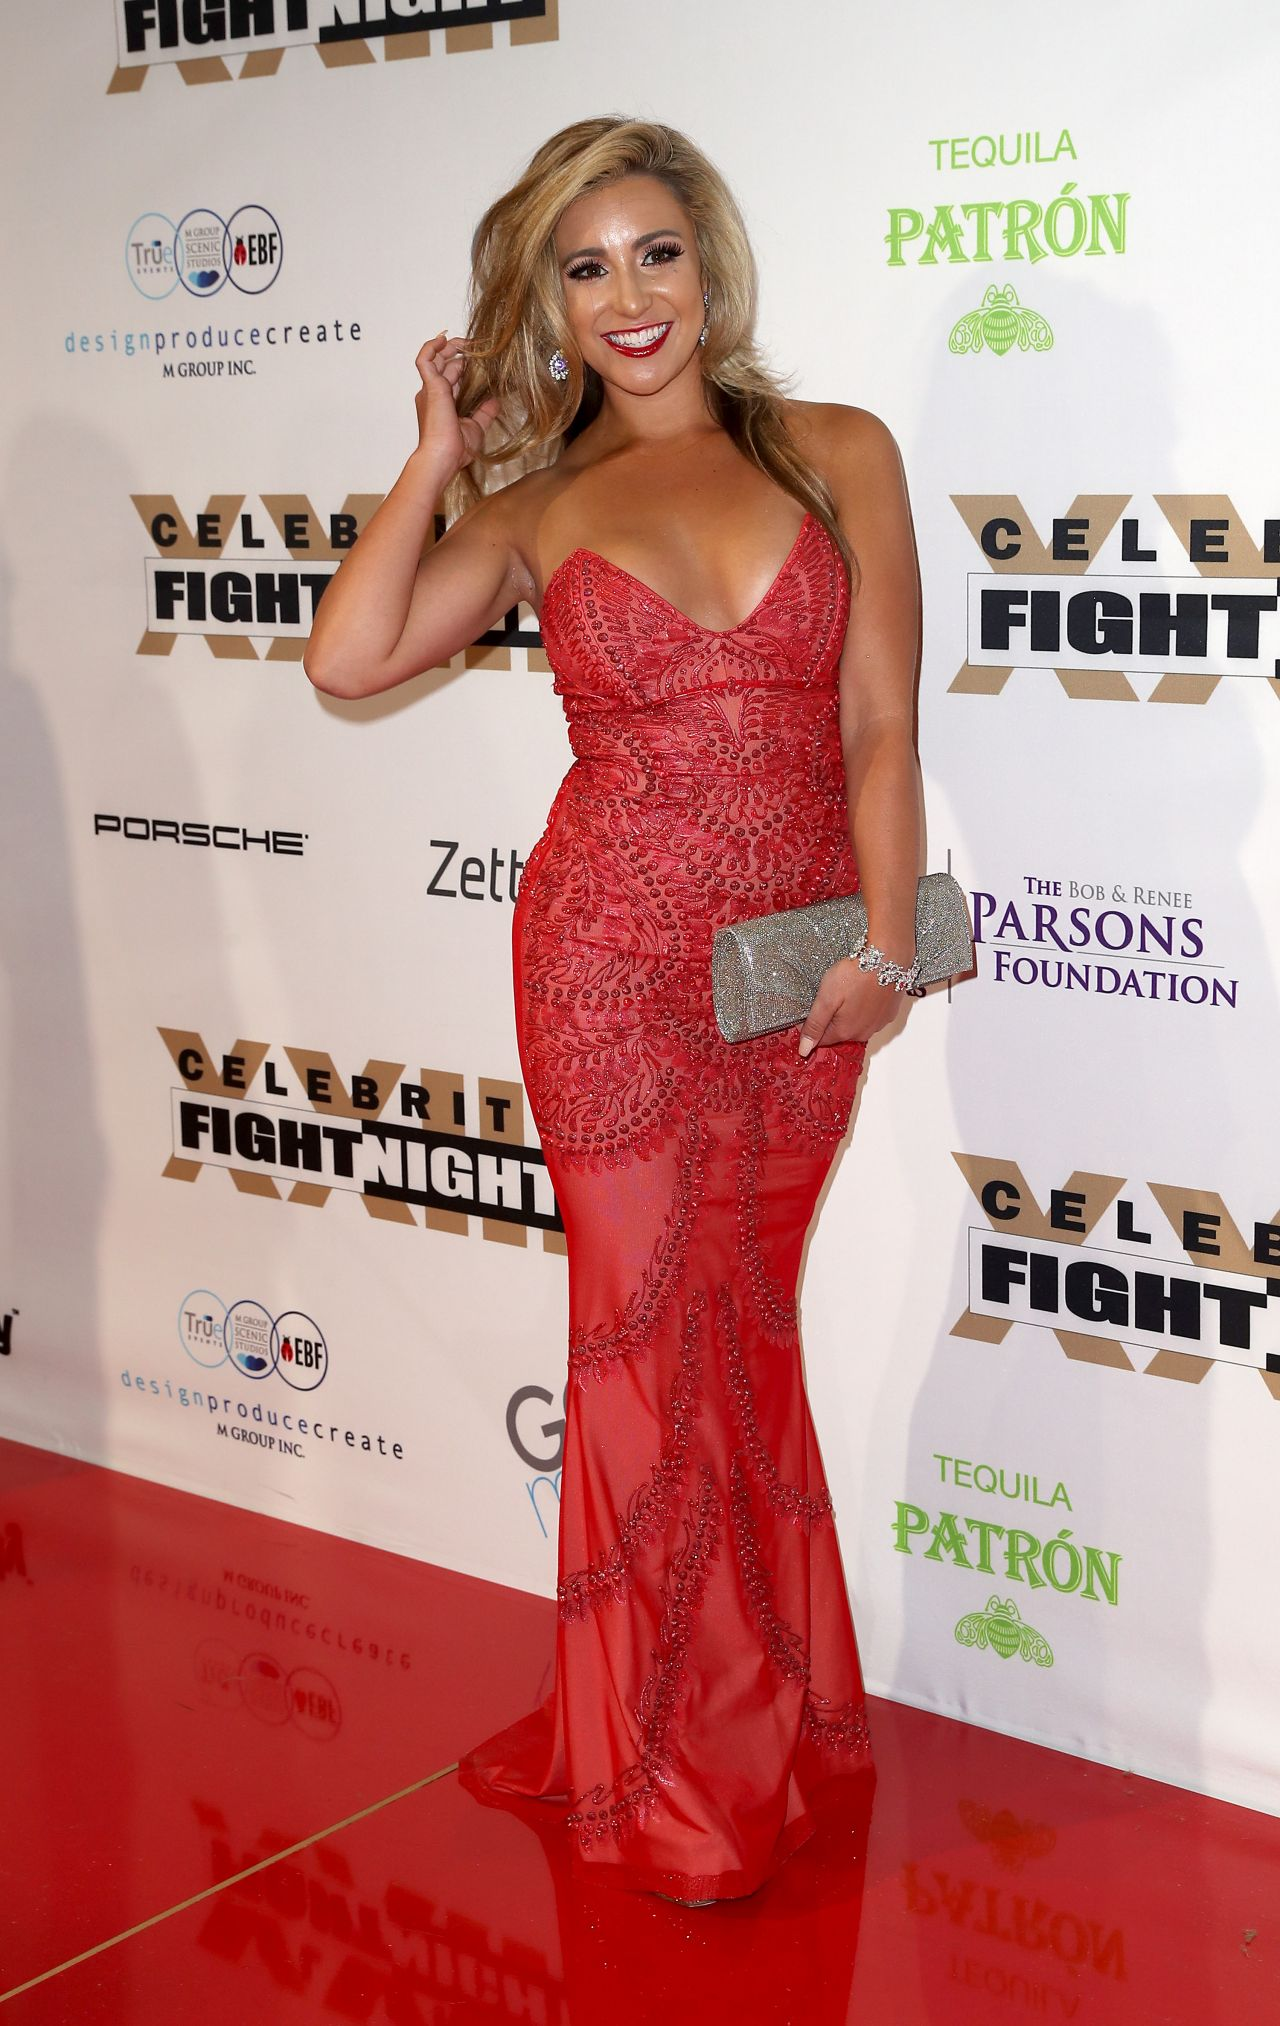 Chelsea Pezzola at Muhammad Ali's Celebrity Fight Night in